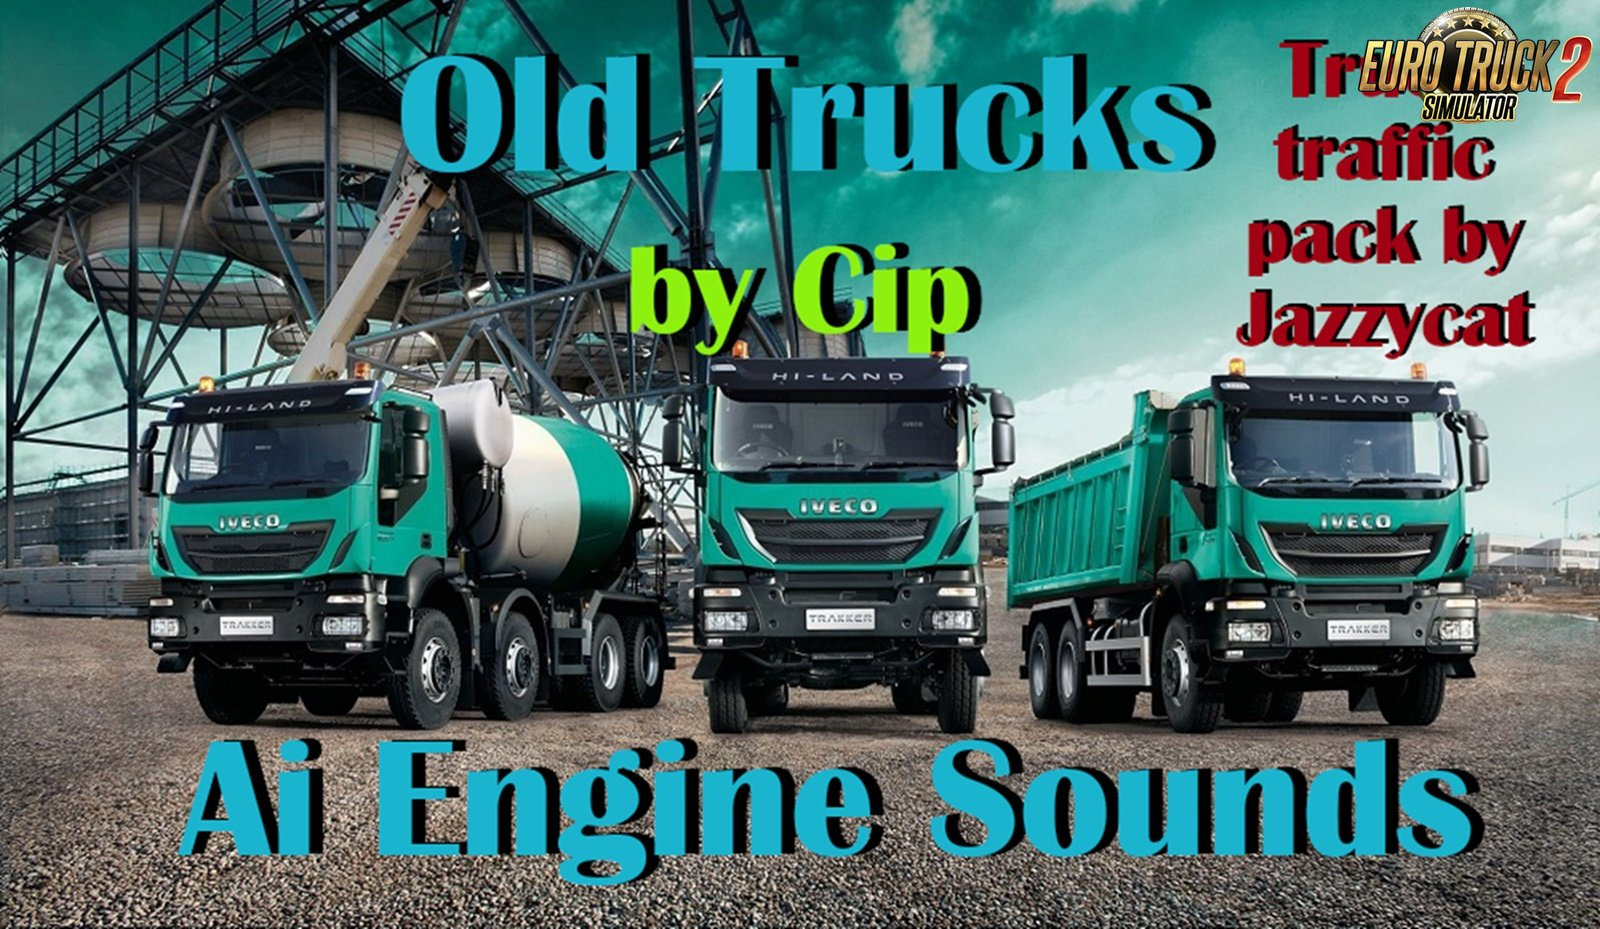 Old Trucks Ai Engine Sounds v1.1 for Jazzycat Truck pack 3.1.1